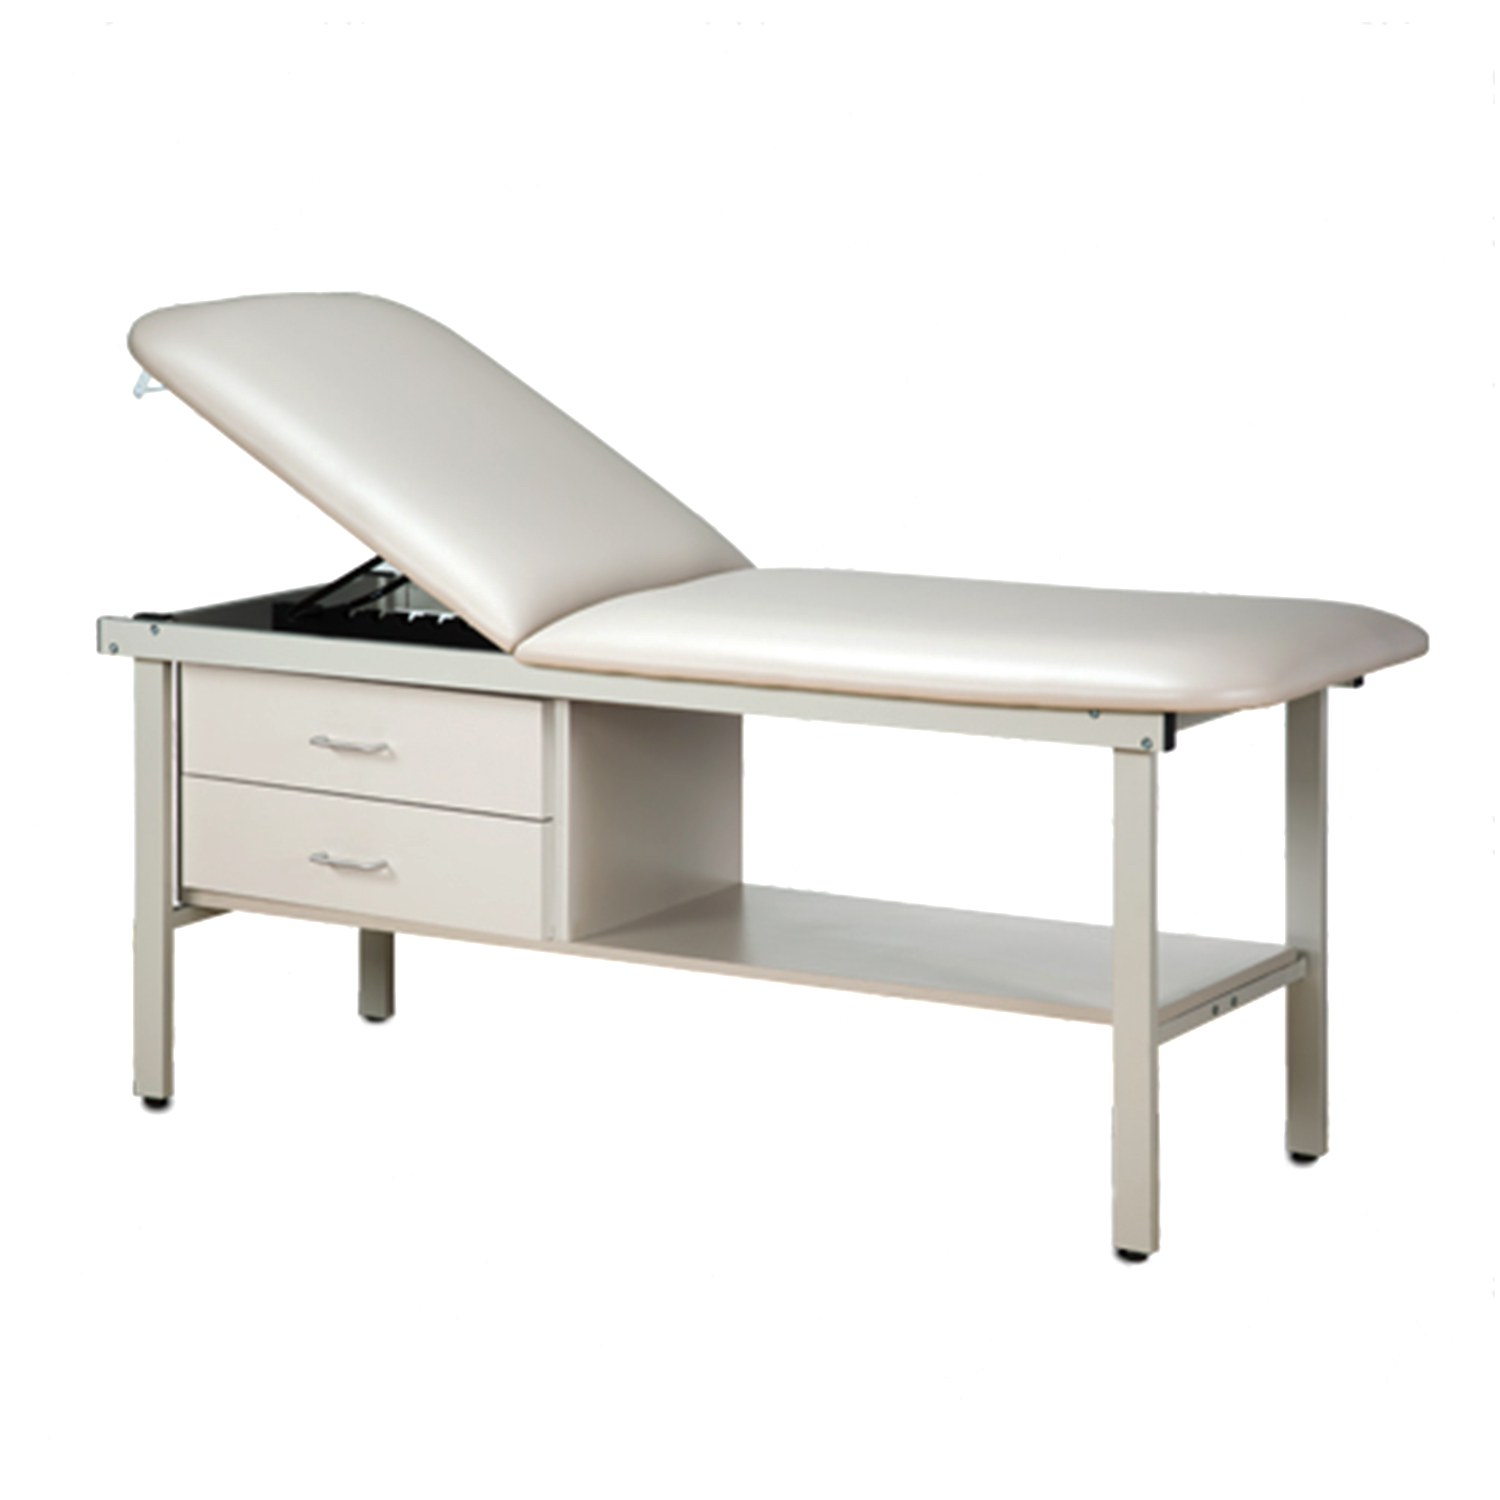 Clinton ETA Alpha Series Treatment Table with Drawers - 3013